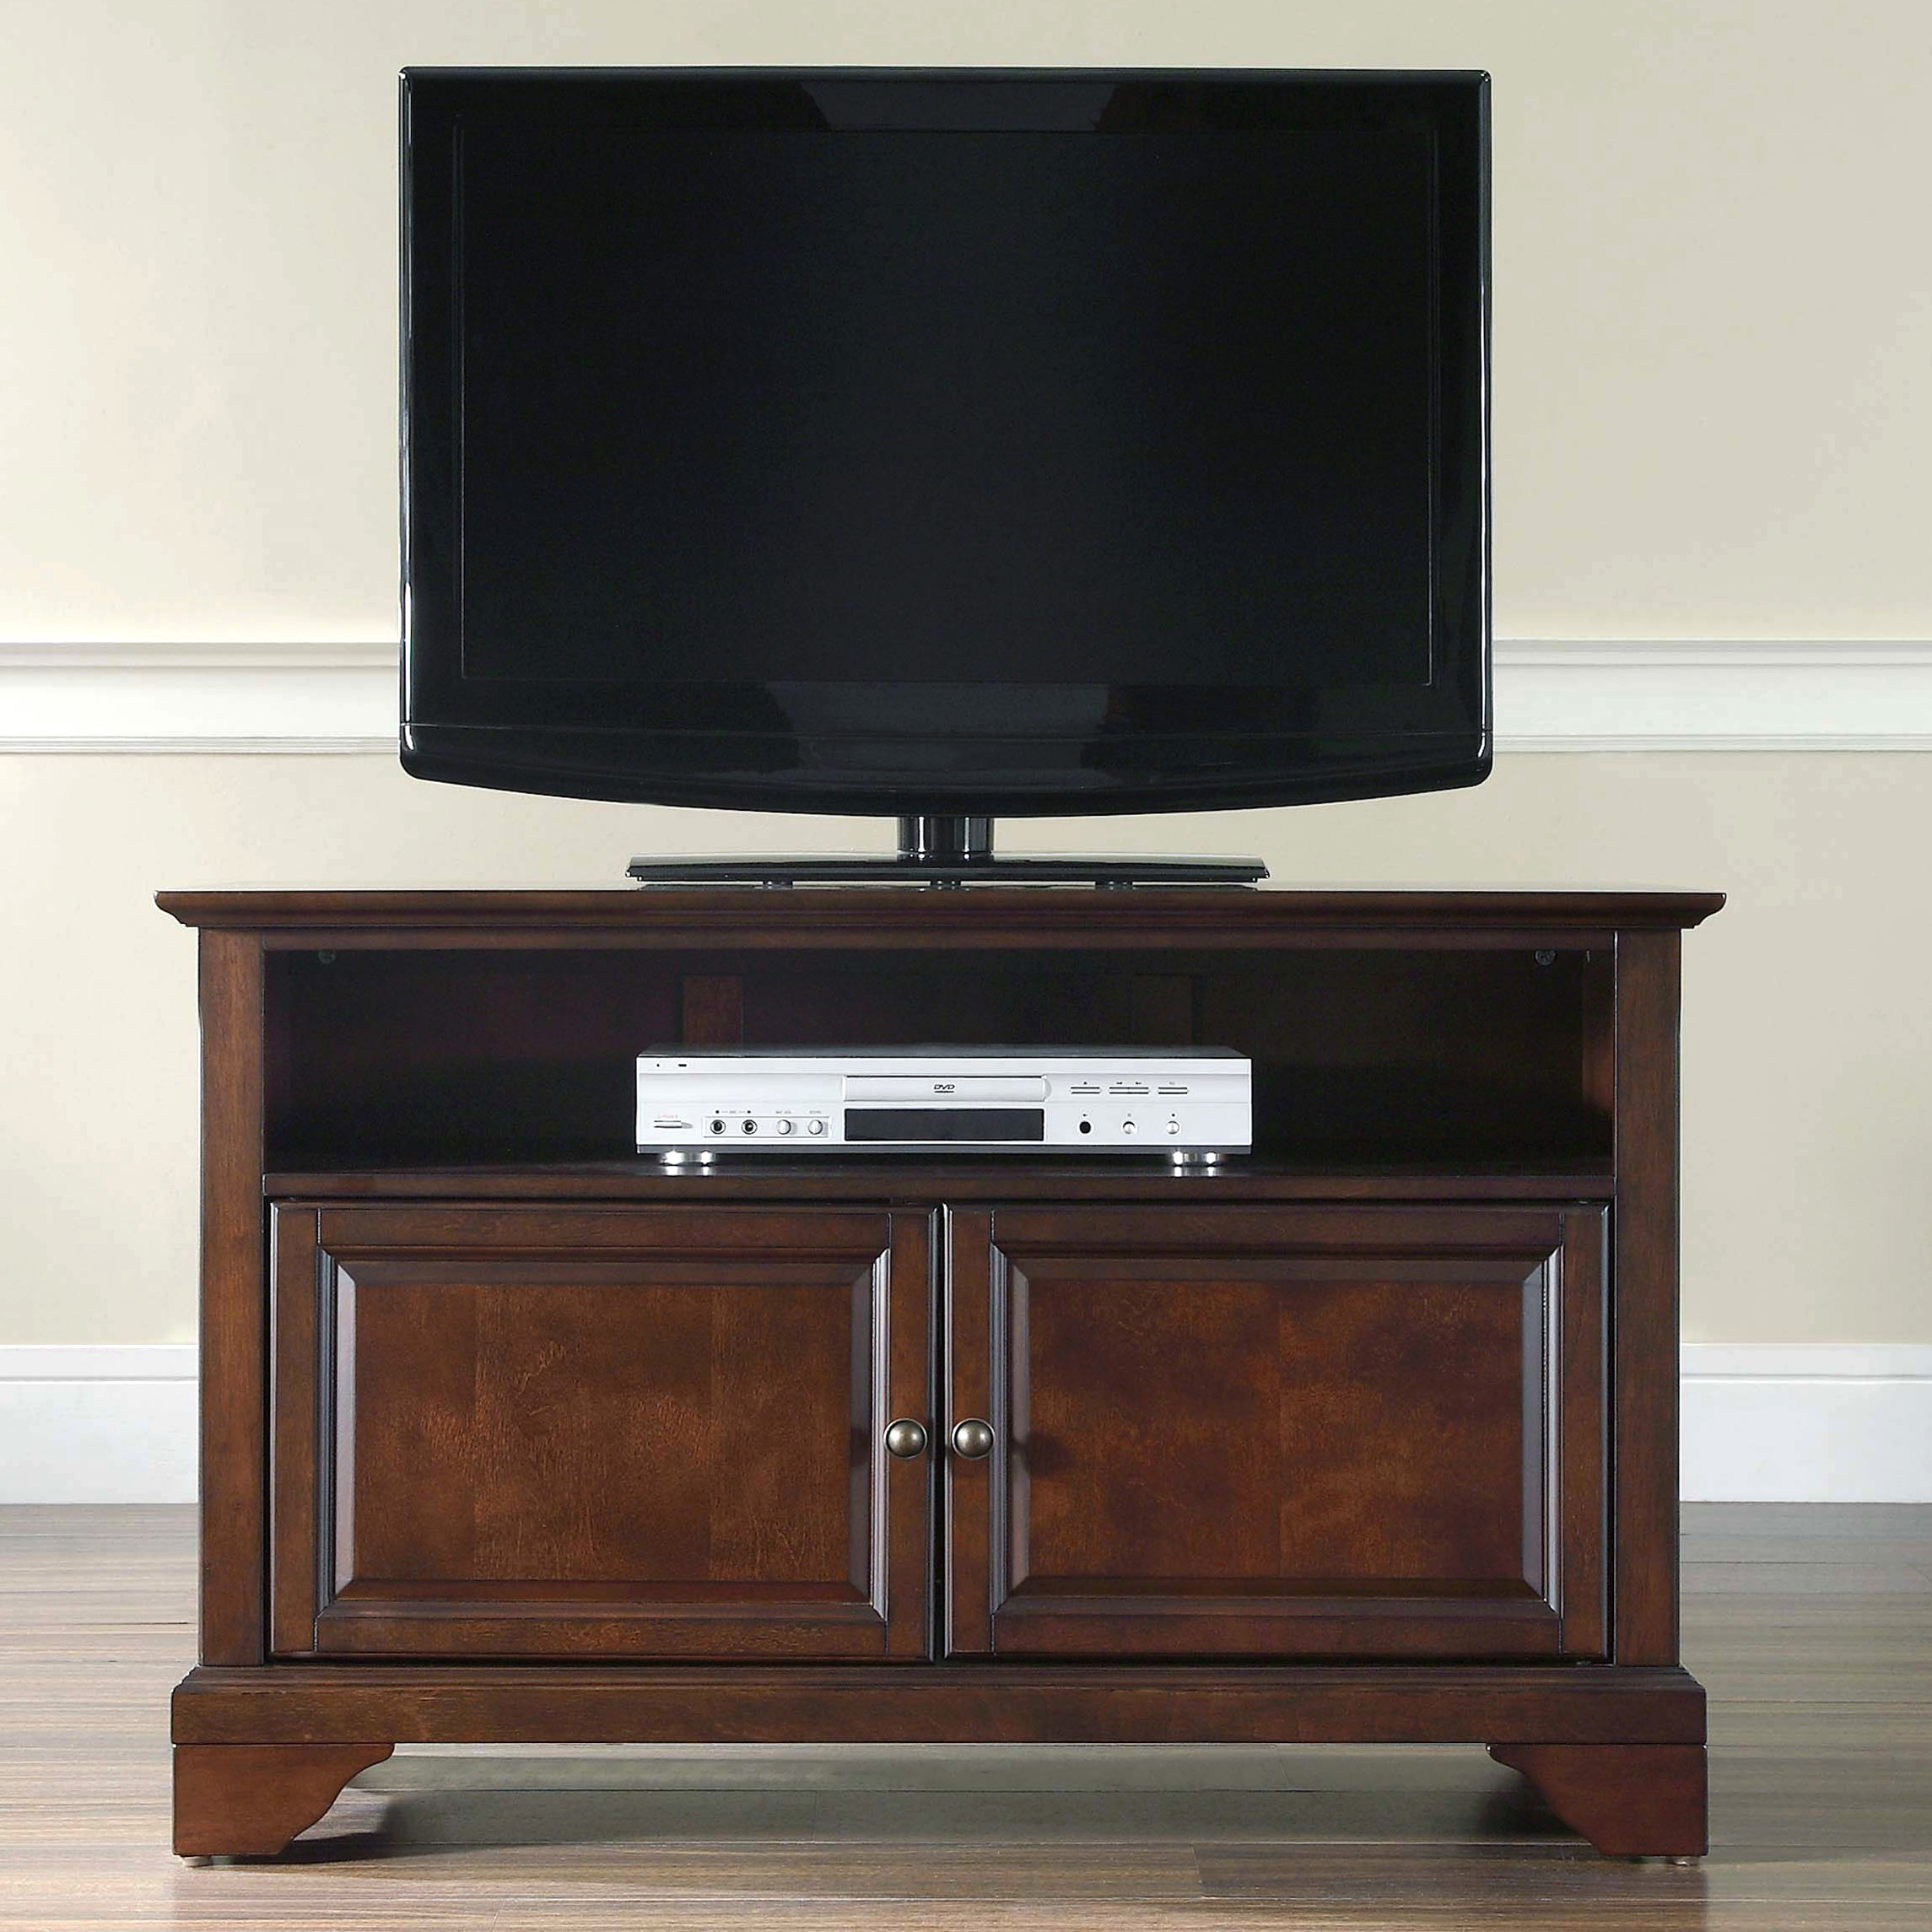 """Hedon Tv Stand For Tvs Up To 42"""" For Most Current Ericka Tv Stands For Tvs Up To 42"""" (#10 of 20)"""